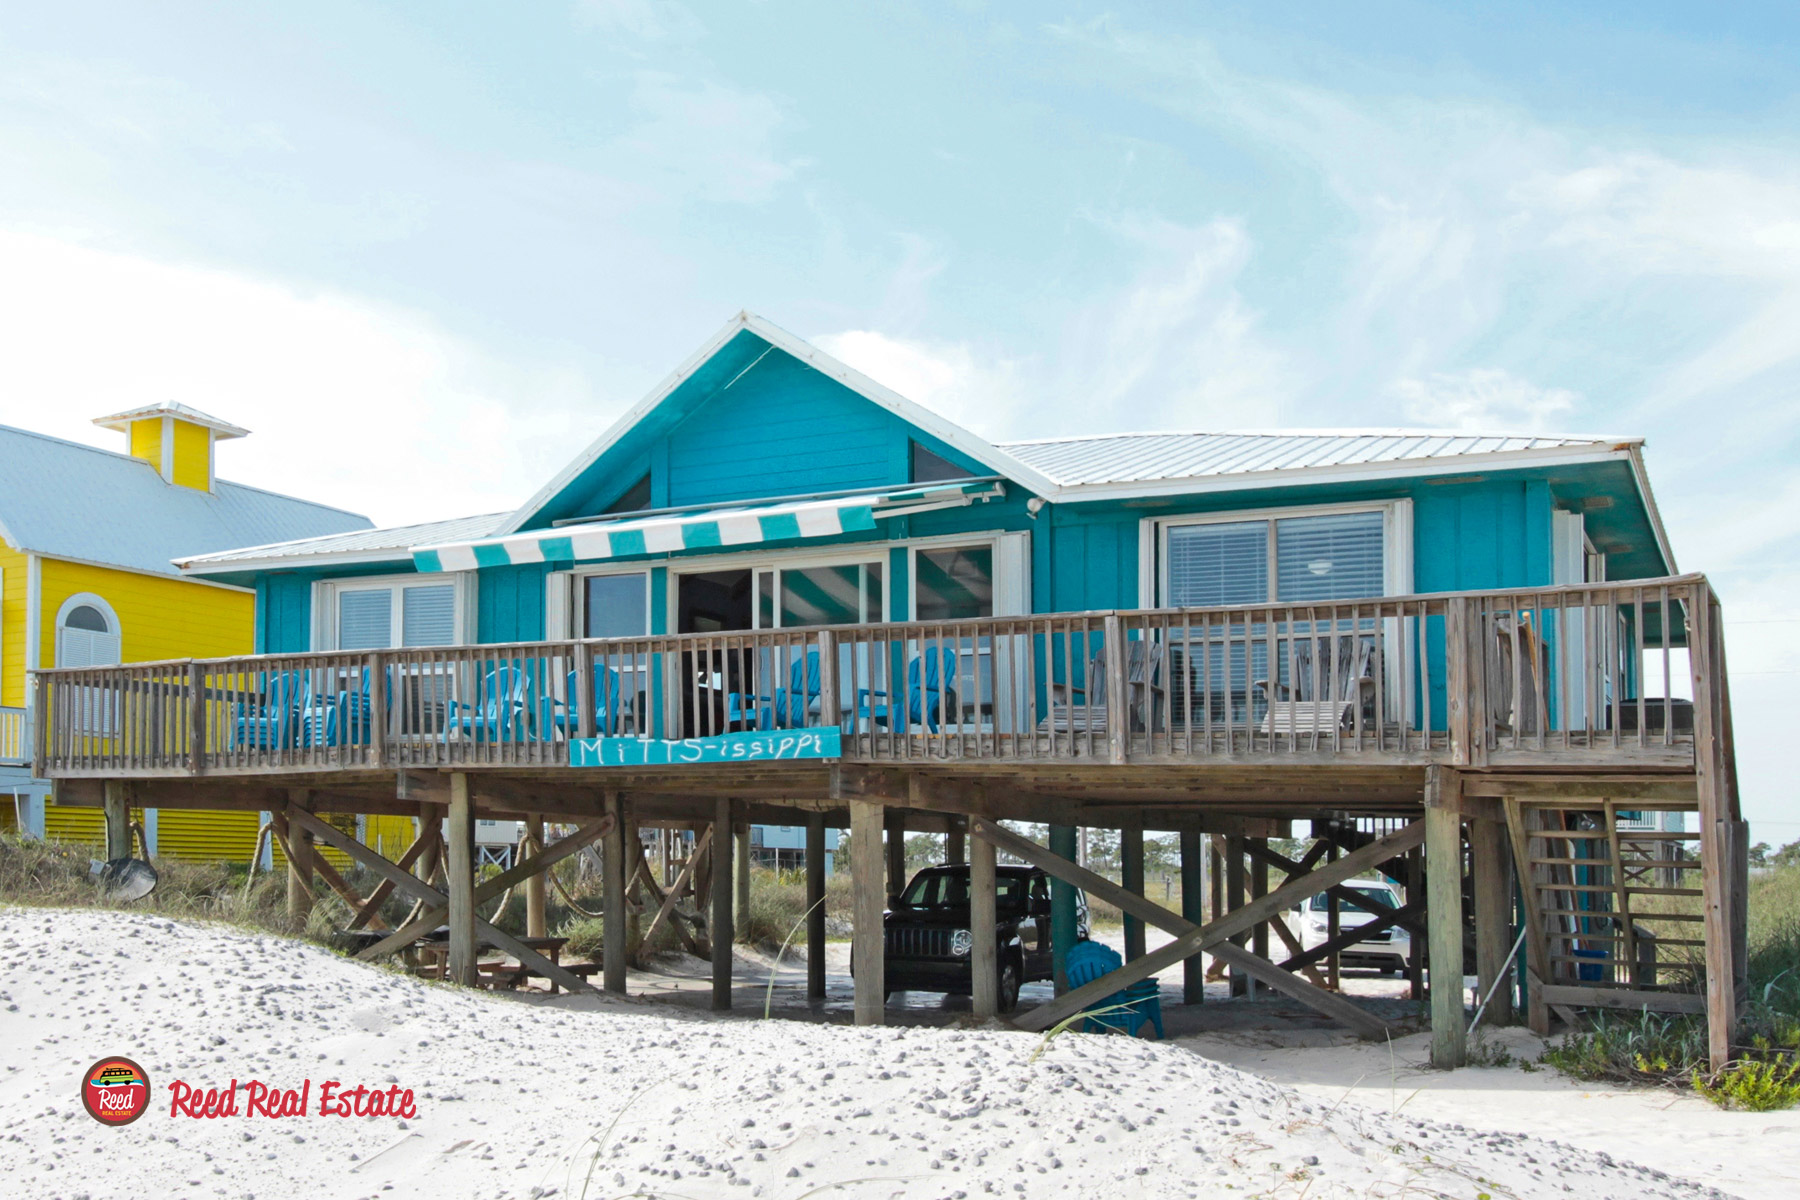 Mitts Issippi Gulf Shores 4 Bedroom 2 Full Bathroom Place To Stay On Vacation 123945 Find Rentals